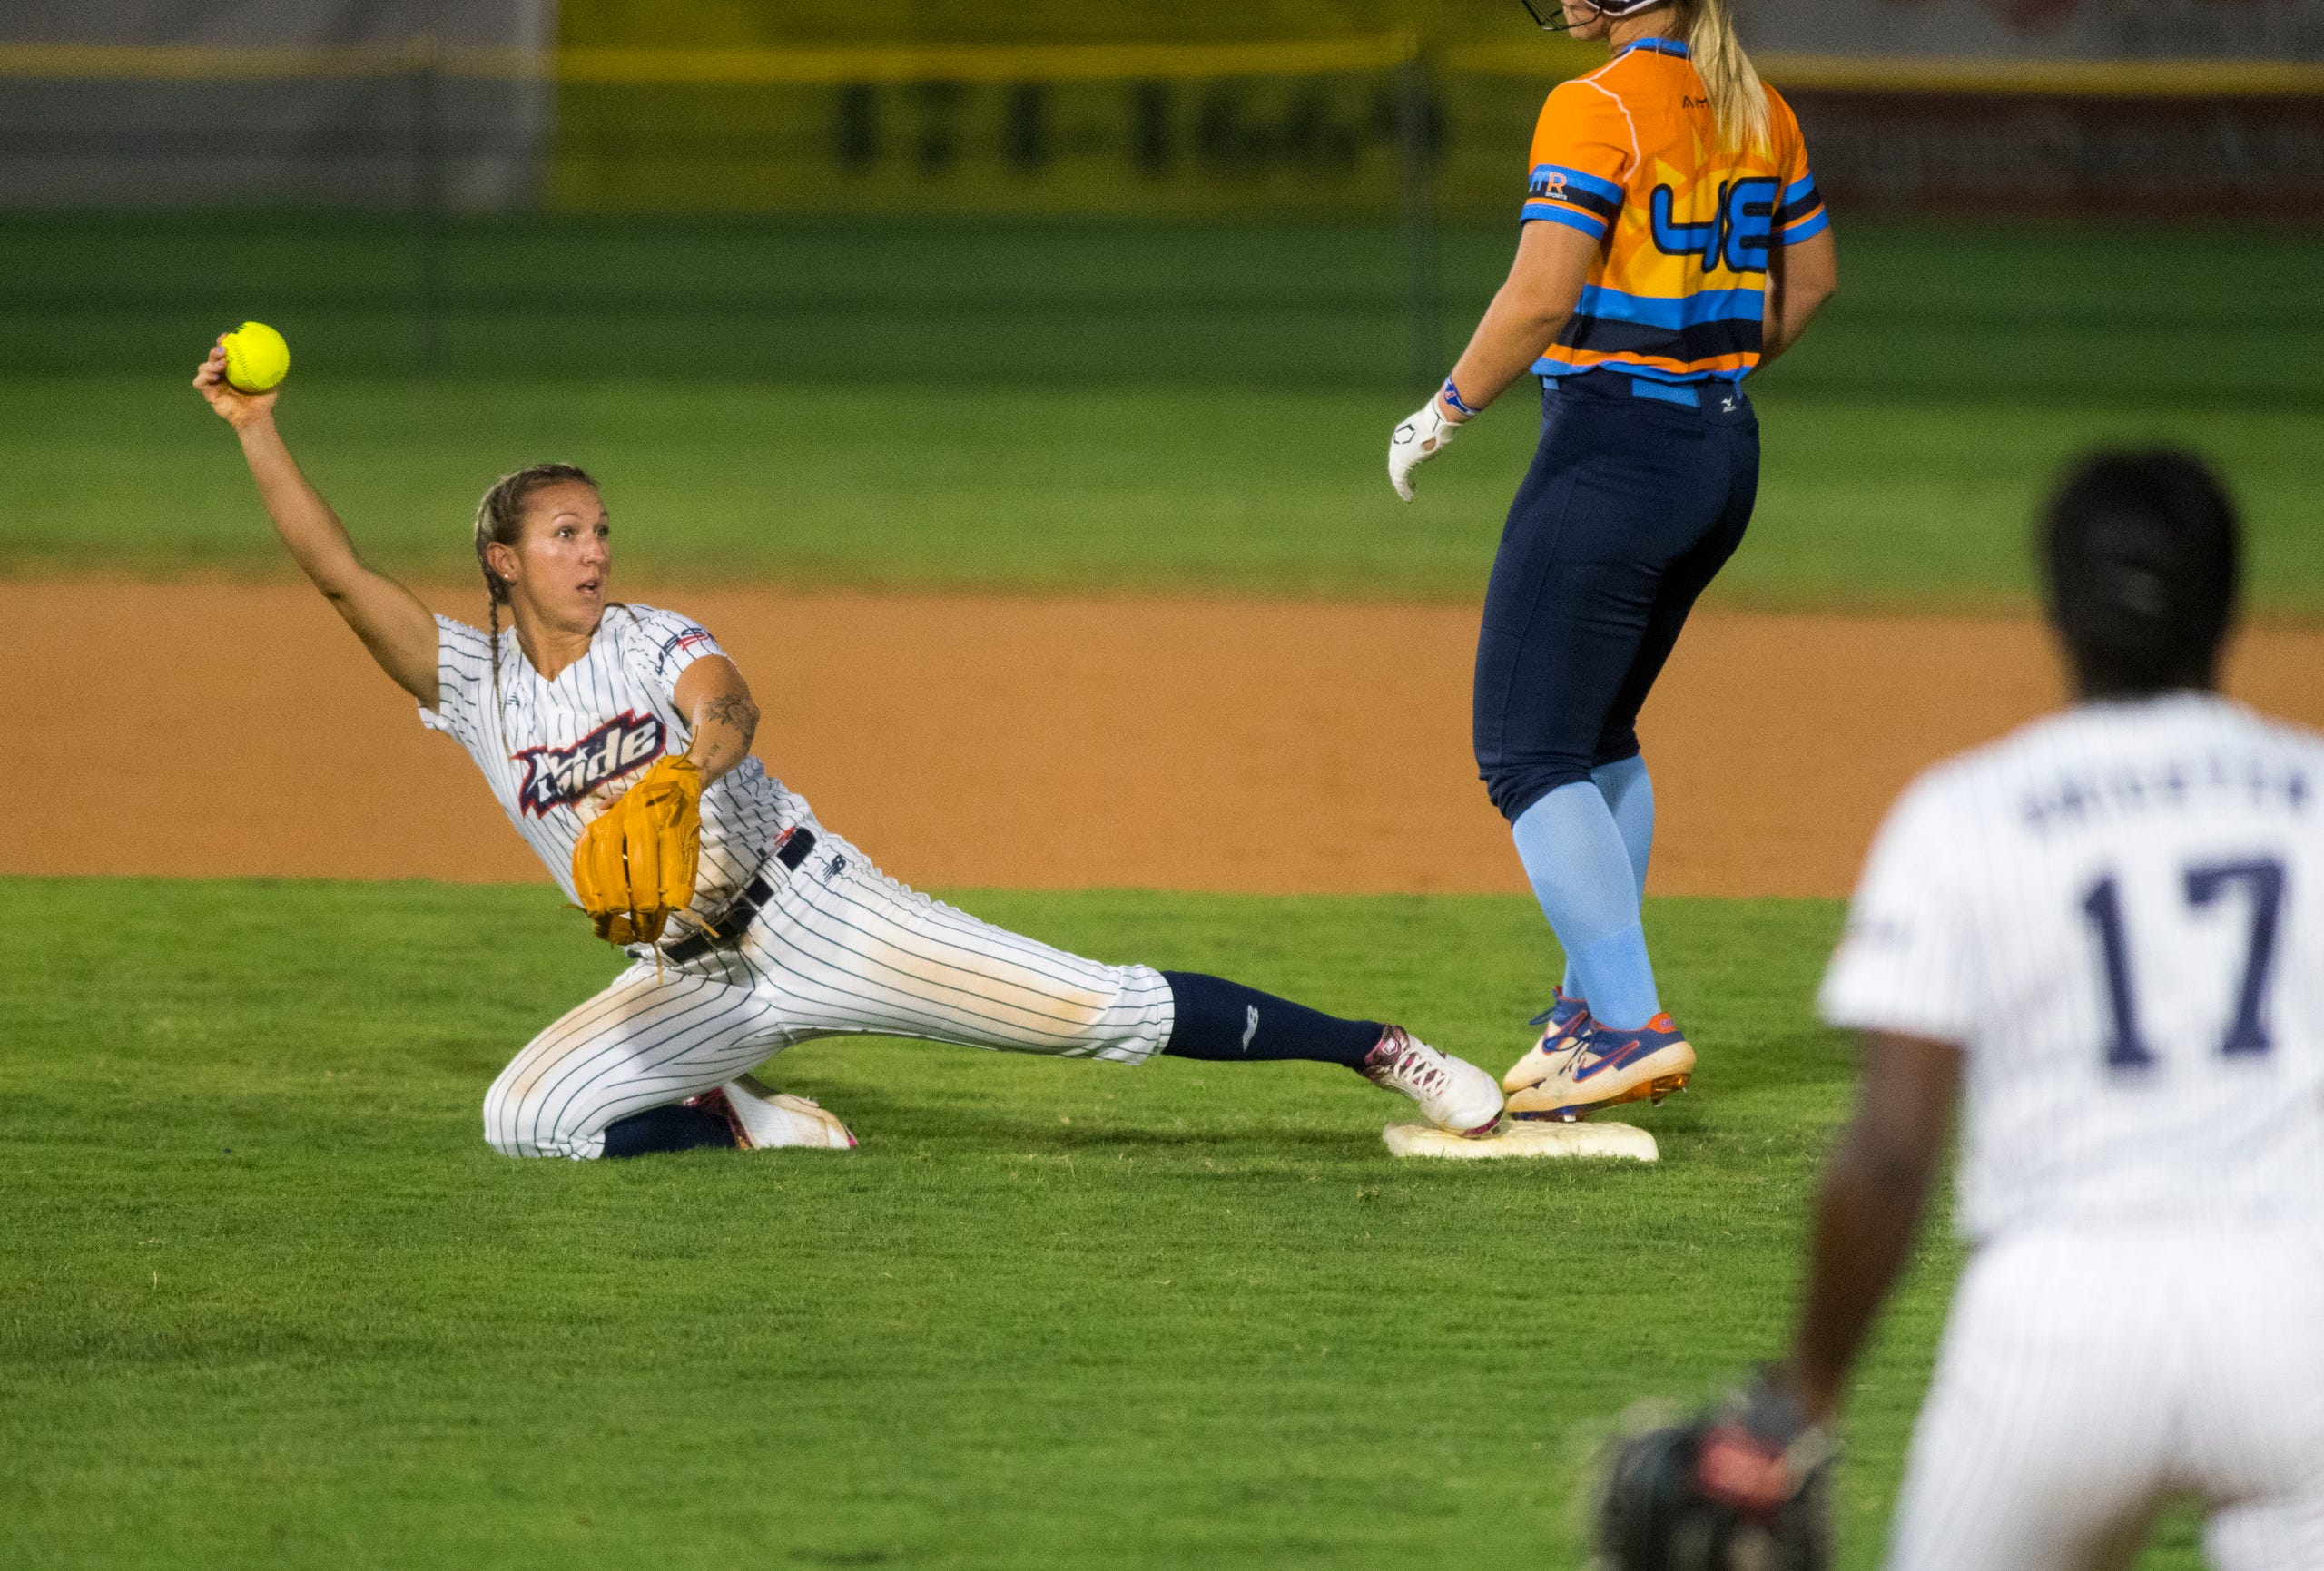 USSSA Pride's Shelby Pendley (2) holds out the ball as she outs a runner at second during the USSSA Pride vs Team Florida in an exhibition game at Bosse Field in Evansville, Ind., Wednesday evening, July 14, 2021.